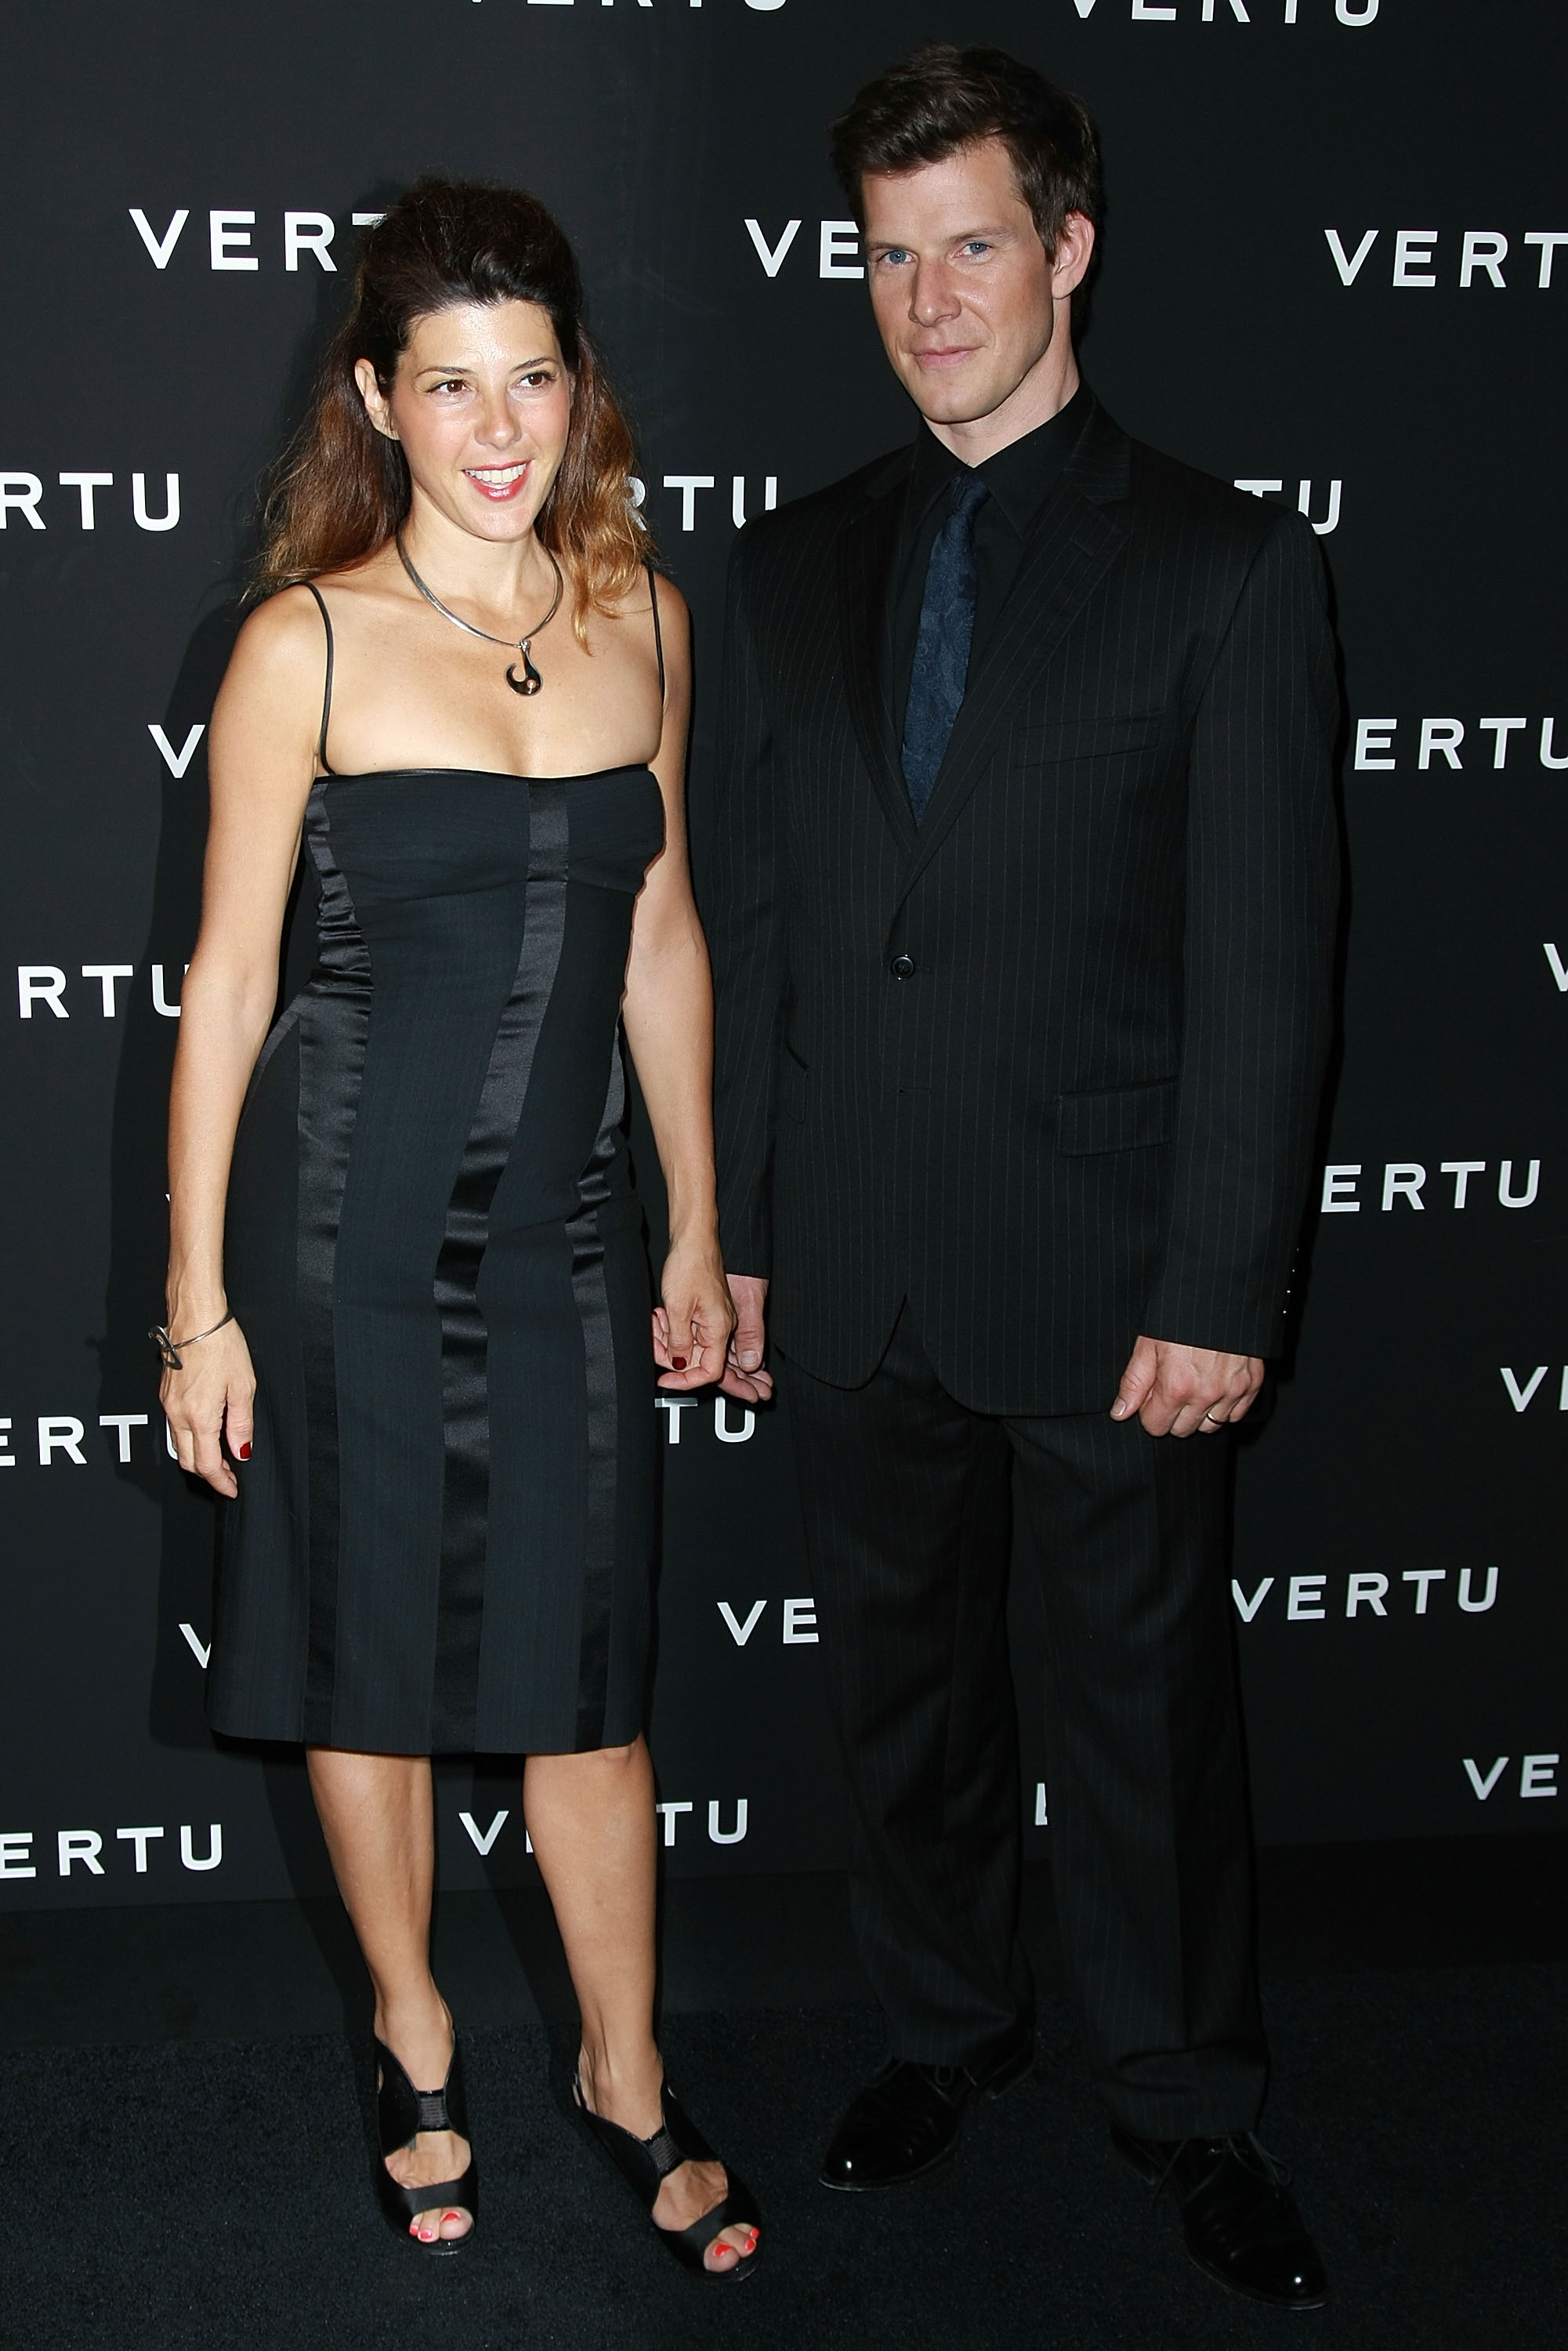 17442_Celebutopia-Marisa_Tomei-U.S._launch_of_Vertu5s_Signature_phone-04_122_903lo.jpg